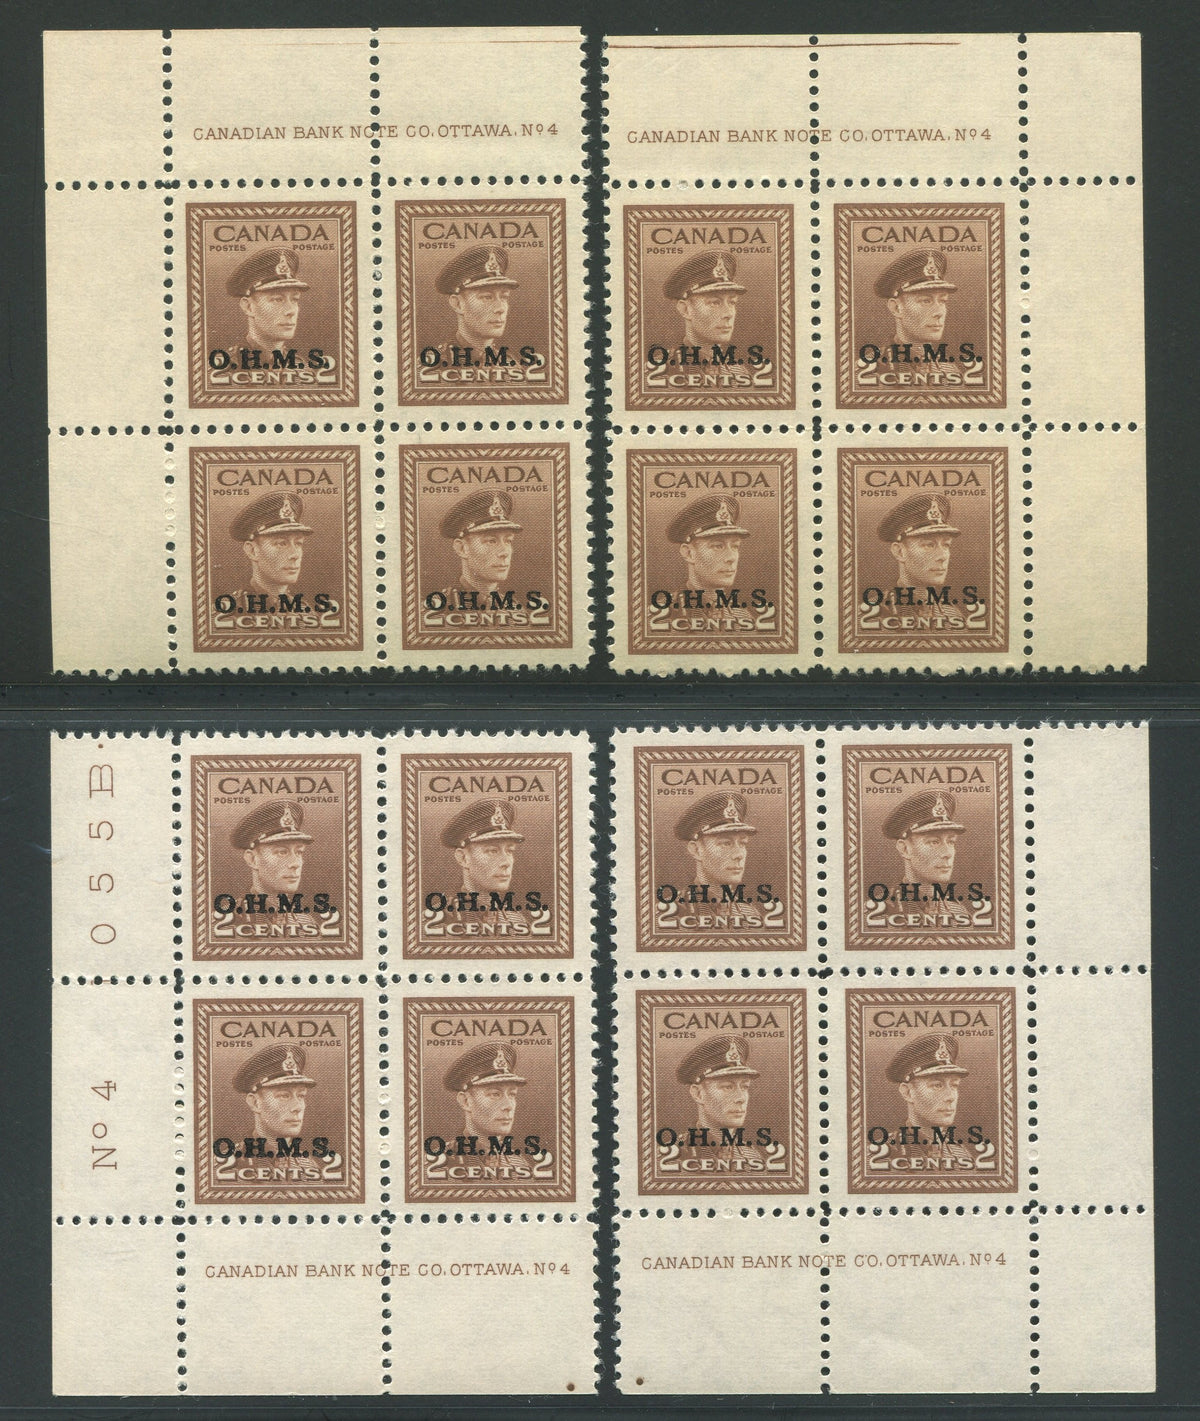 0349CA1709 - Canada O2 - Mint Plate Block Matched Set